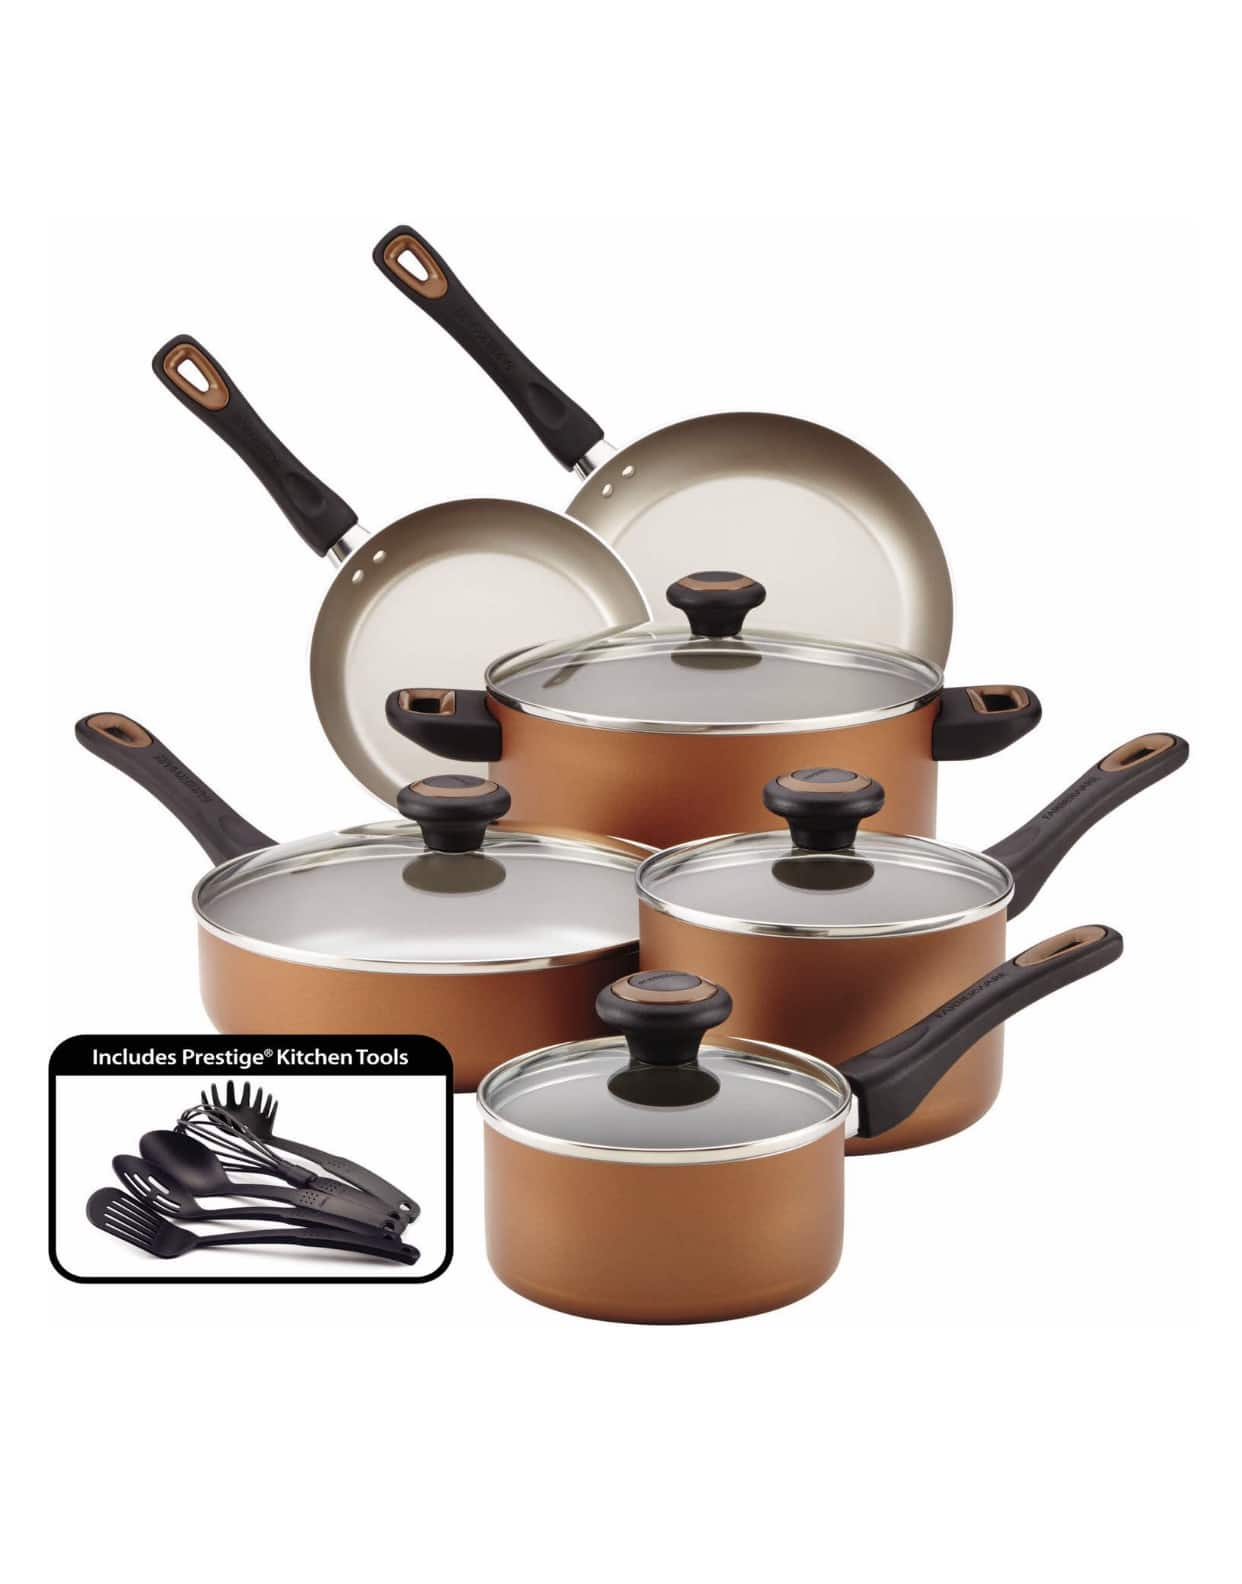 Faberware High-Performance Nonstick Cookware Set, 15 Piece - In store only $15